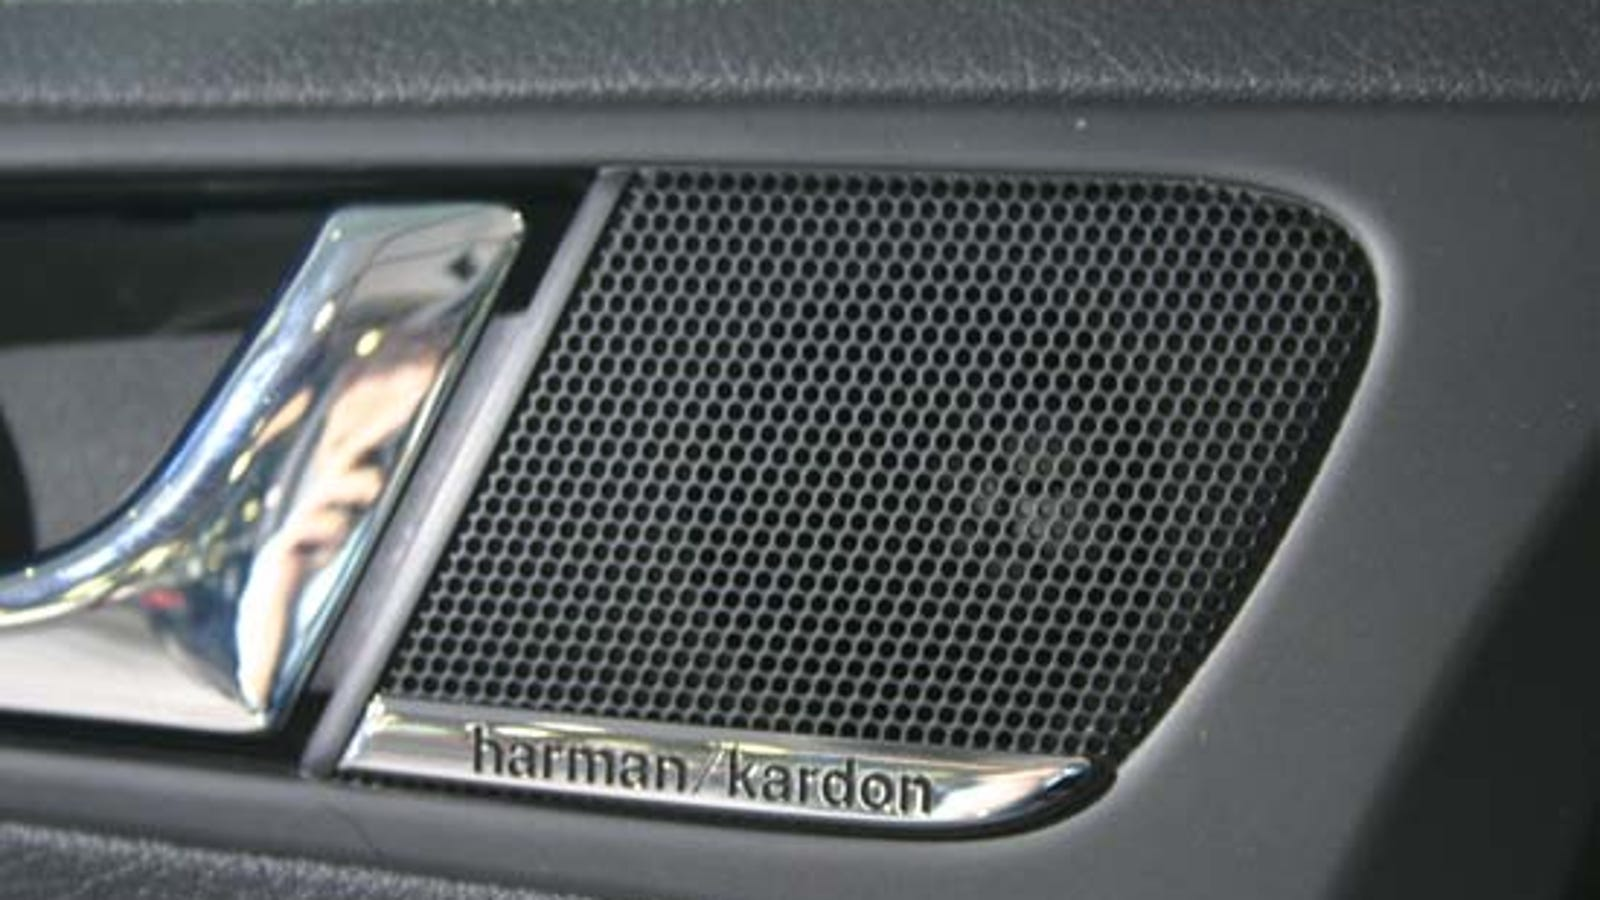 Harman Kardon Car Audio: Subaru Teams With Harman-Kardon For In-Car Audio